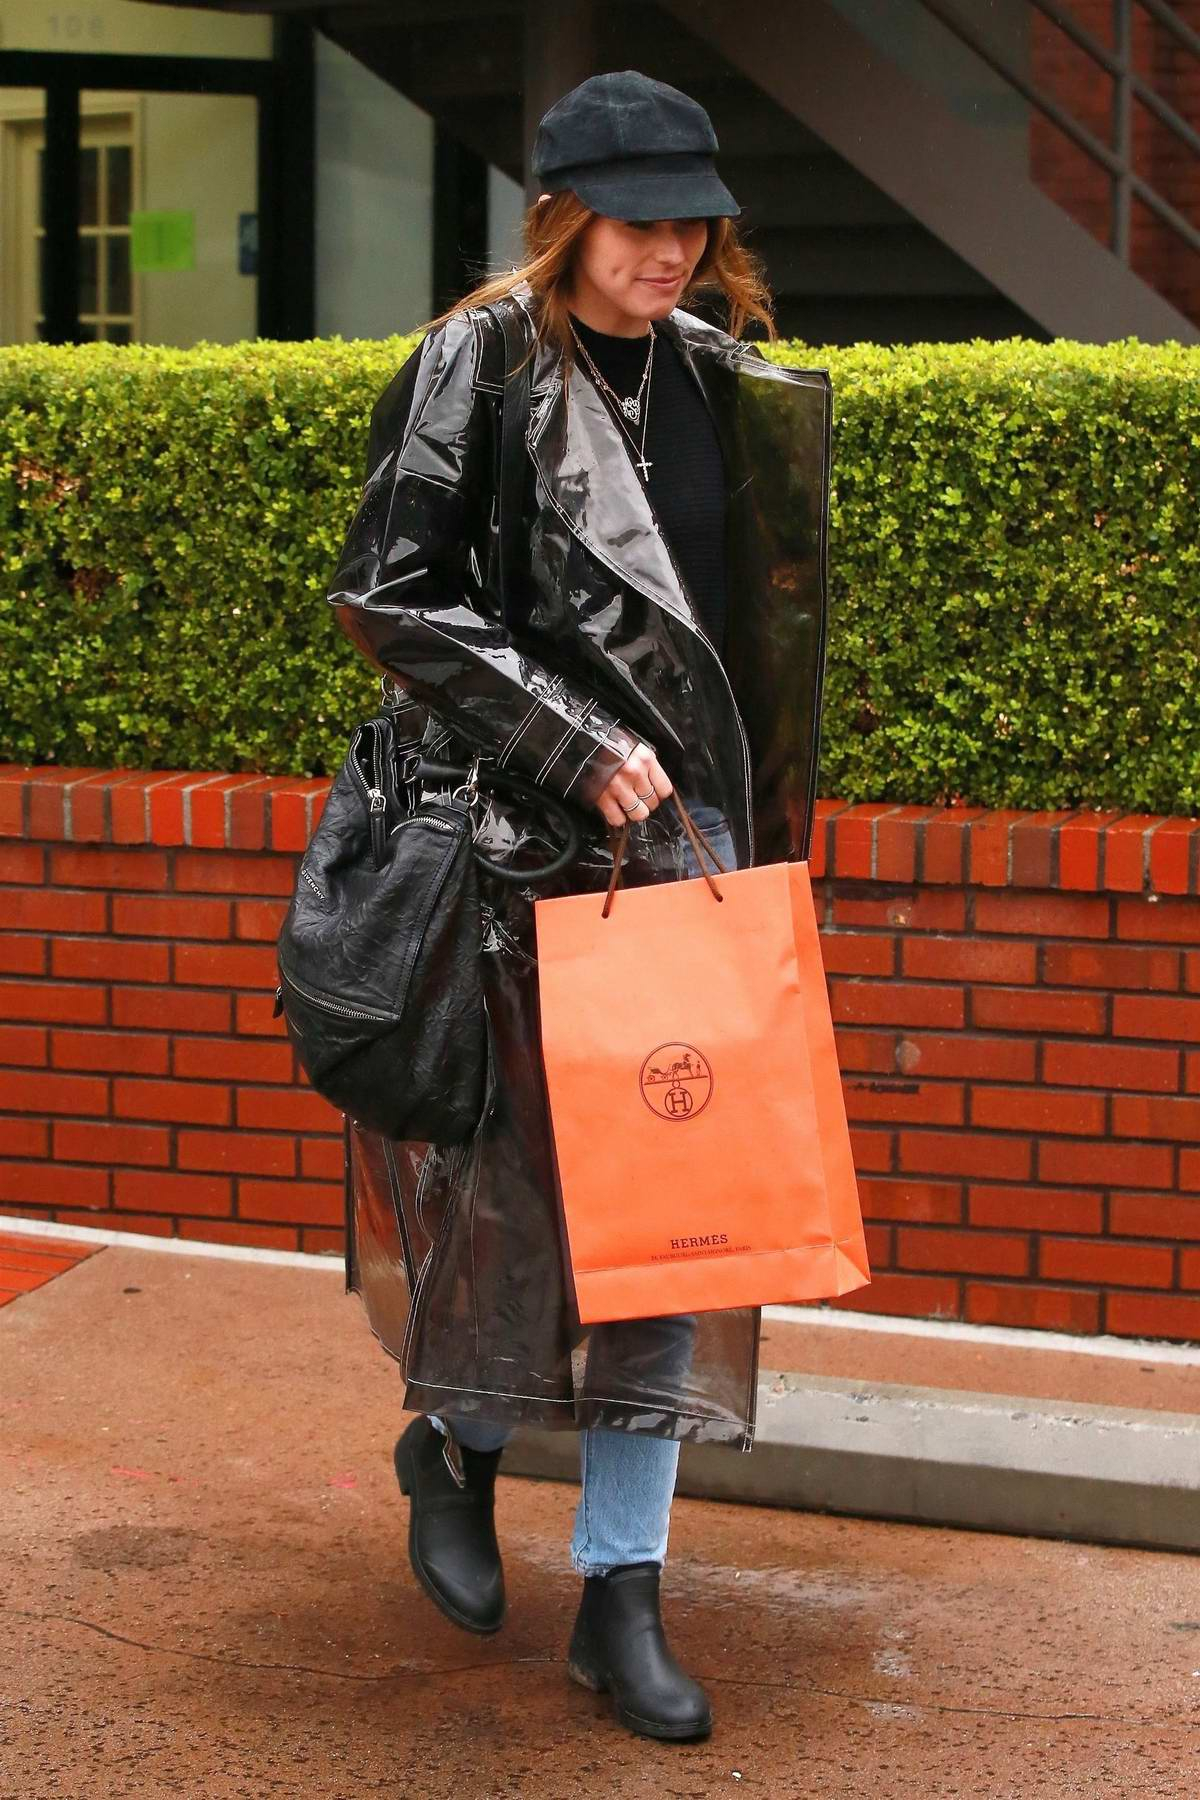 Katherine Schwarzenegger seen after her engagement to Chris Pratt as she steps out on a rainy day in Brentwood, Los Angeles